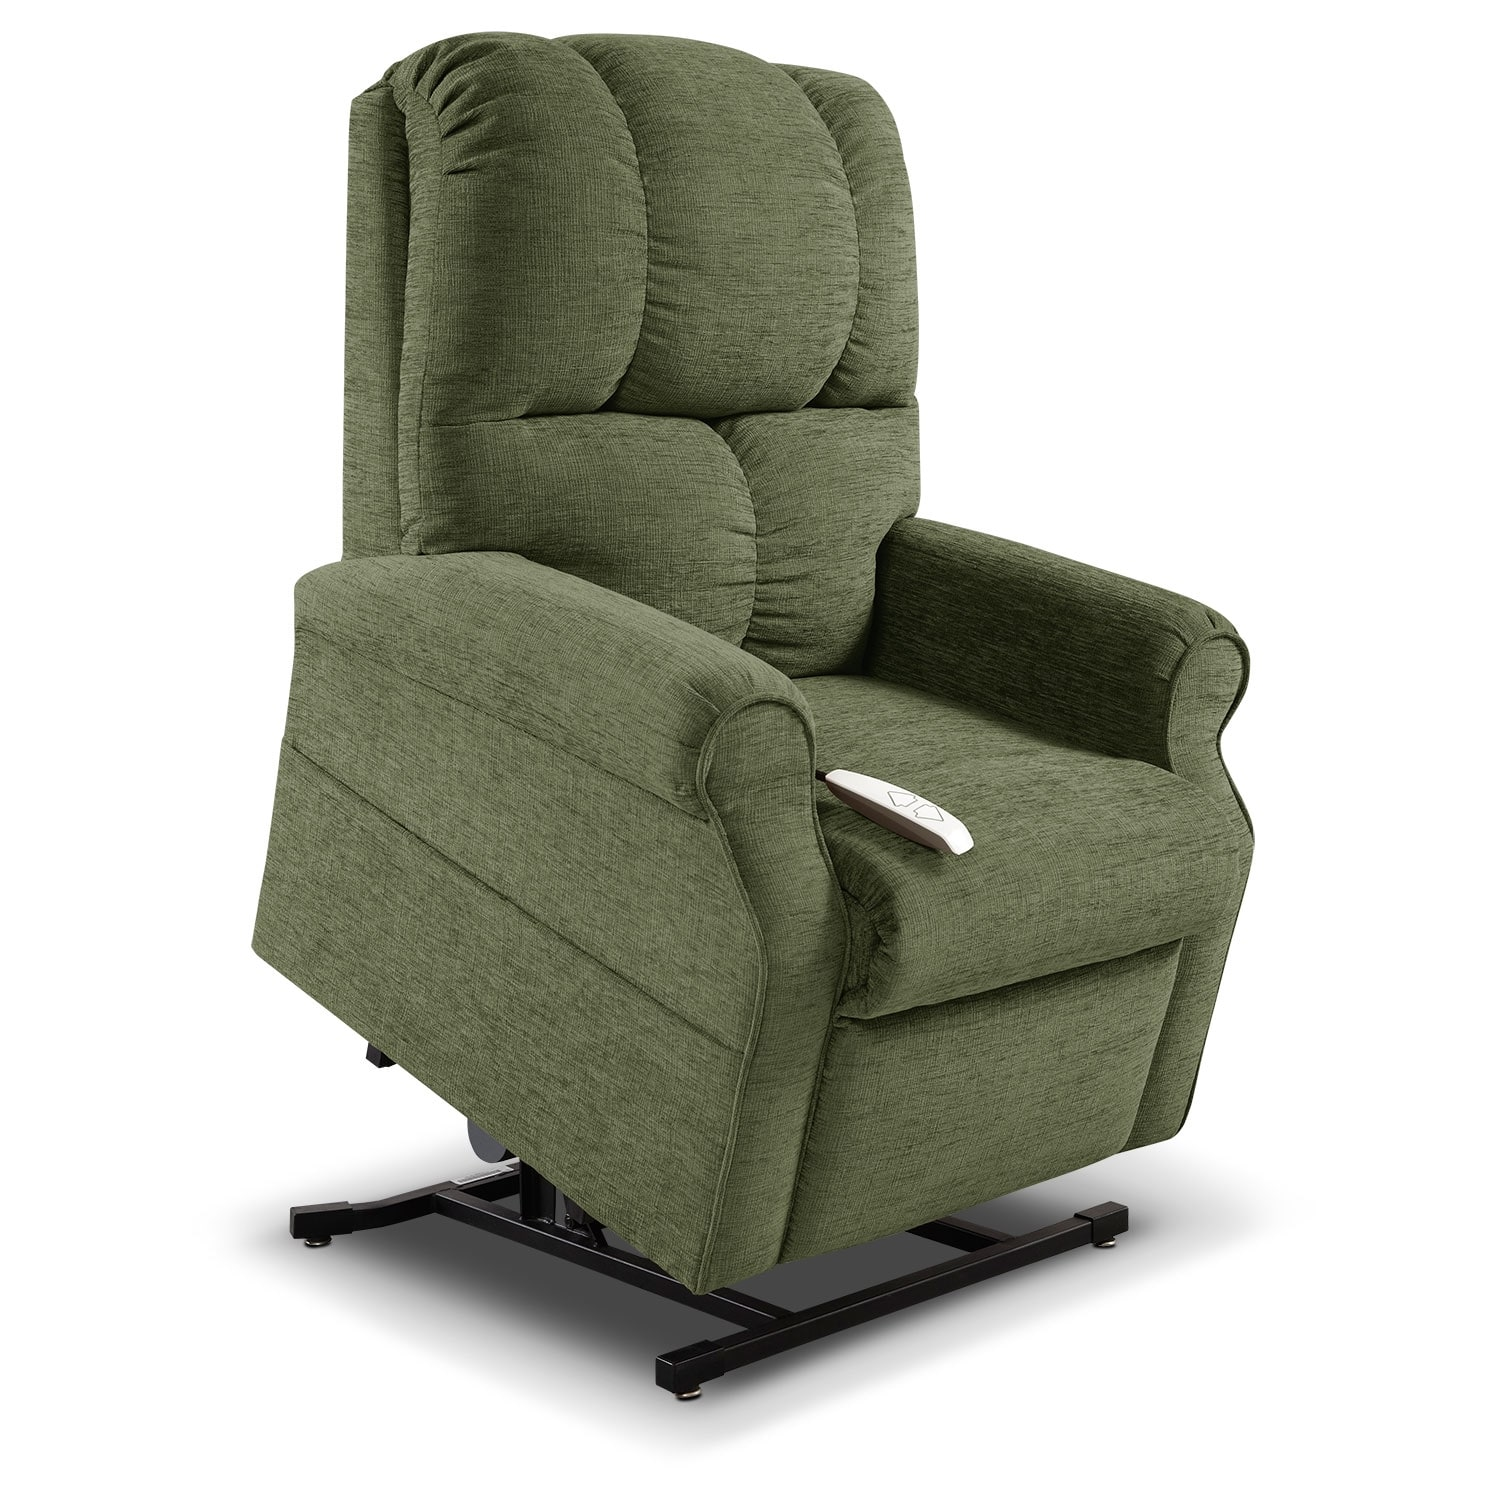 Tillie Lift Chair